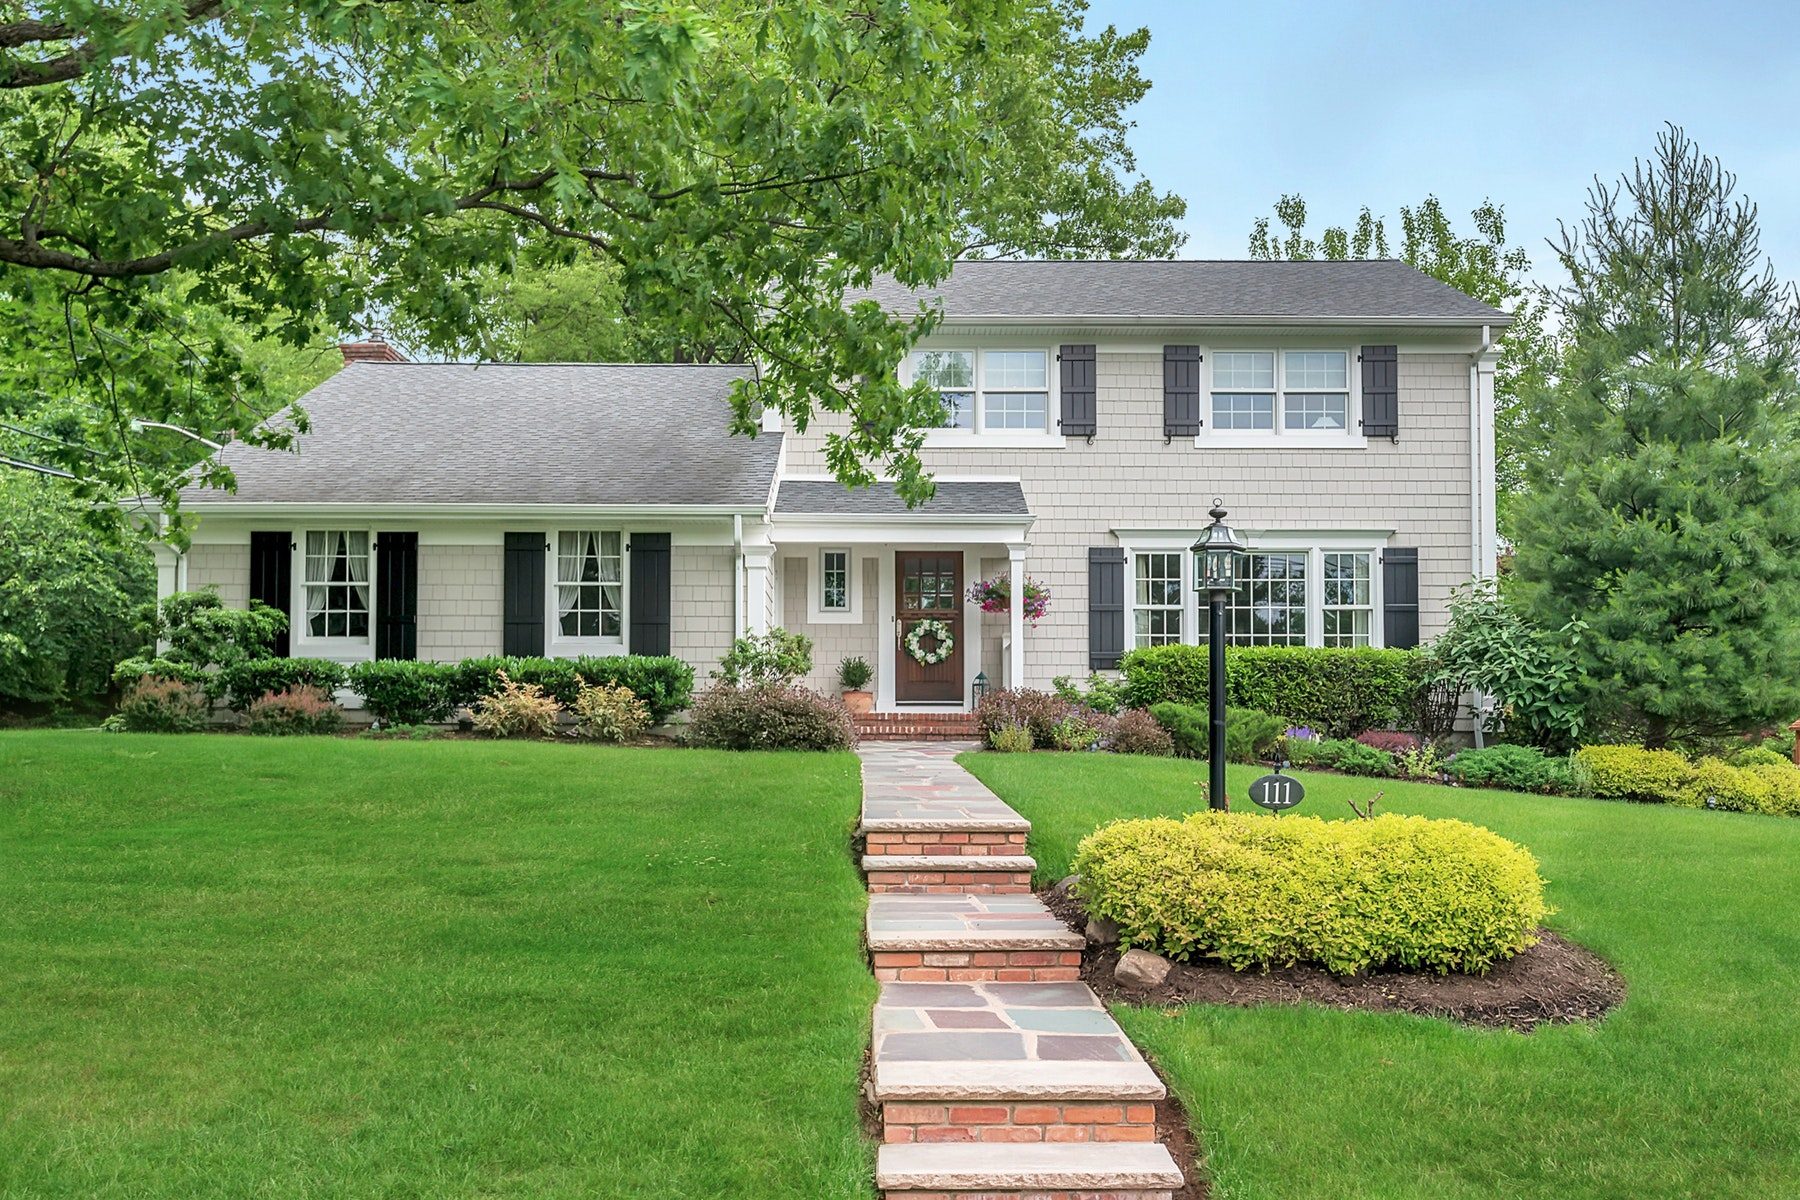 Single Family Homes for Sale at Live Brightwood Park 111 Oak Tree Pass Westfield, New Jersey 07090 United States